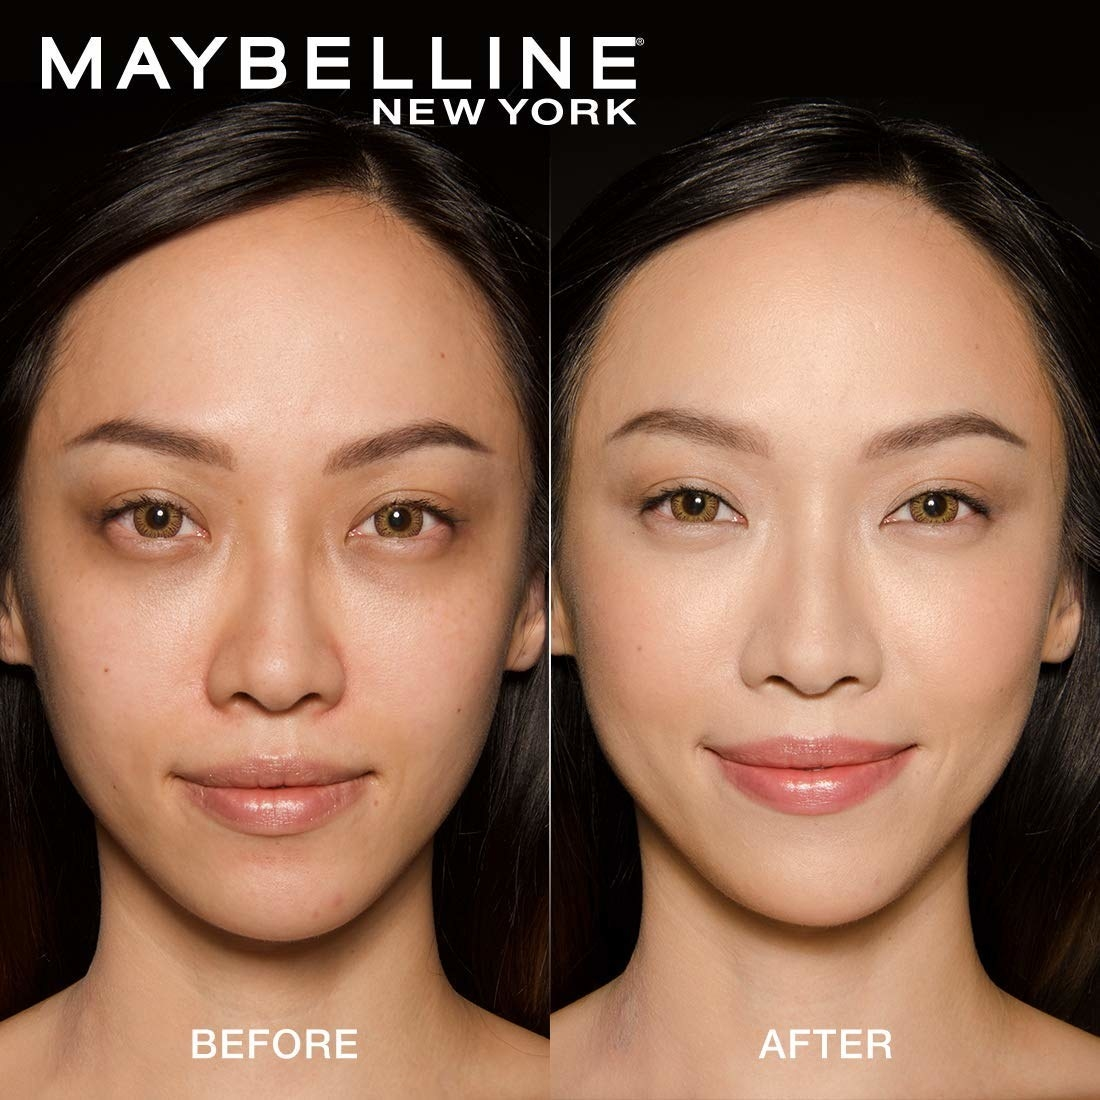 A before-and-after image showing the effects of the concealer.